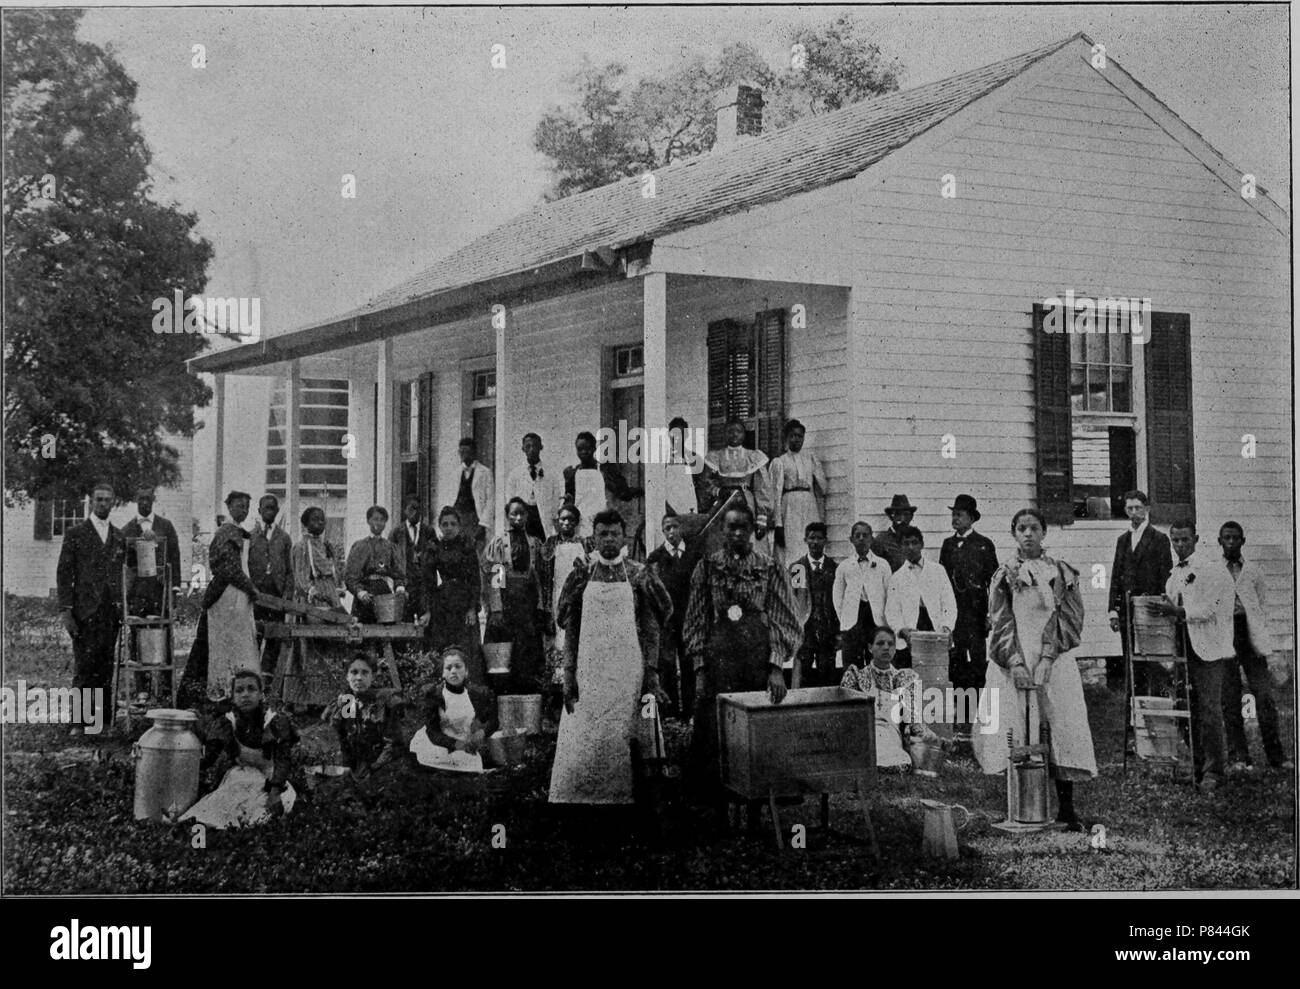 Black and white photograph of Southern University Farm's Dairy Department, comprised by a large group of men and women, some wearing aprons and posing with farm equipment including dairy jugs, with a white, wooden building in the background, located at Southern University in New Orleans, Louisiana, 1893. Courtesy Internet Archive. () - Stock Image